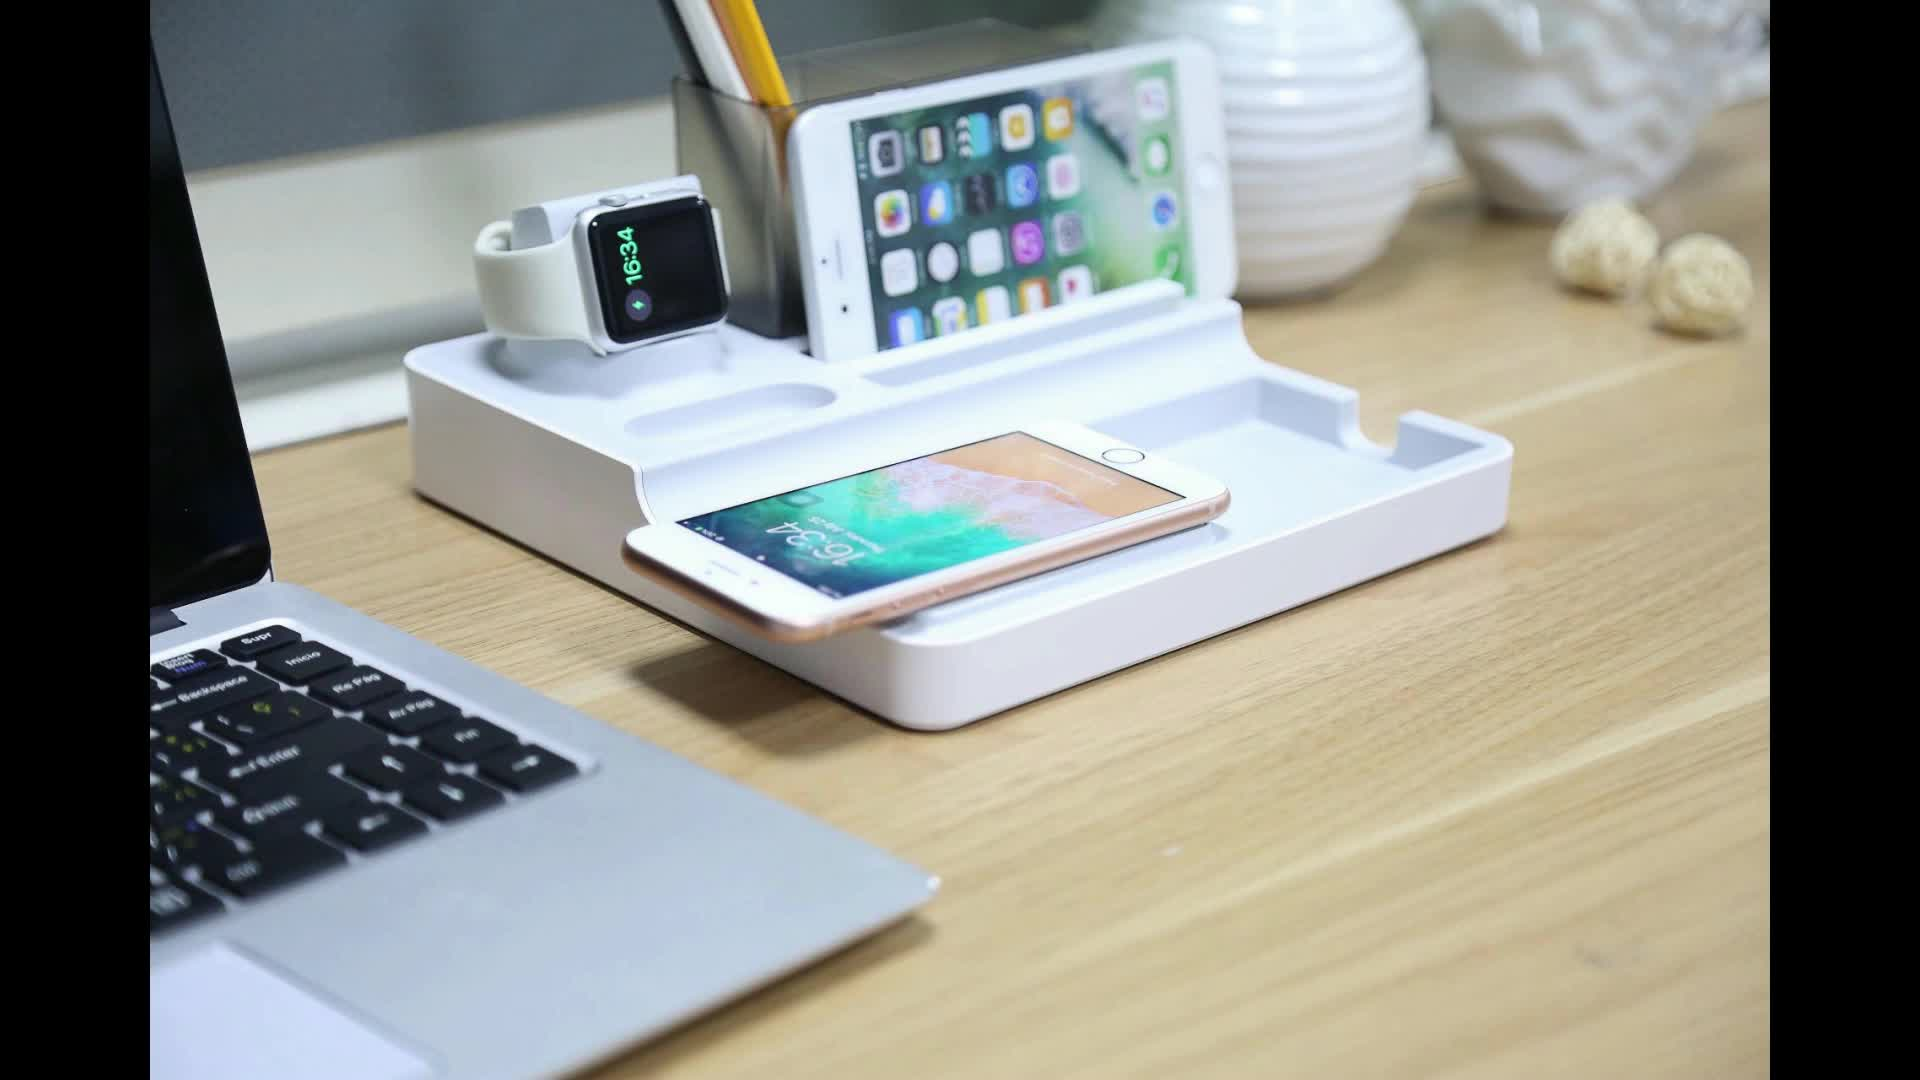 multi function wireless charging station for playstation 4 wireless charger for Air Pods PD 18W charger for iPhone